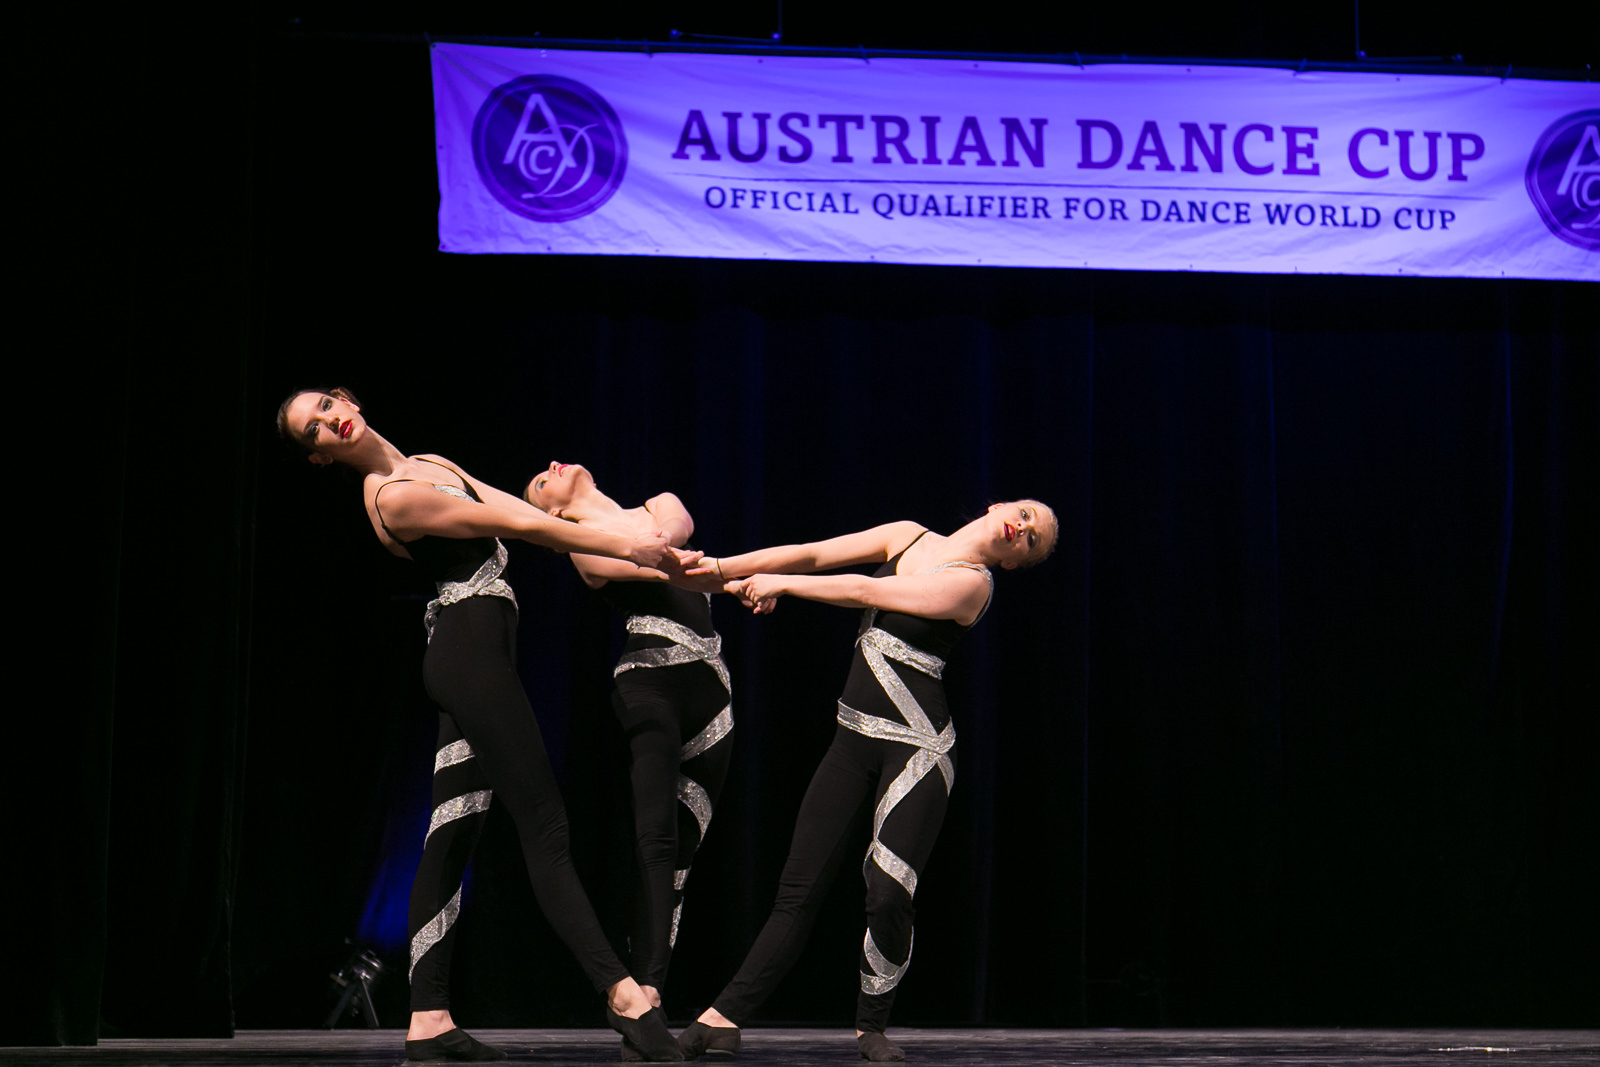 Austrian Dance Cup 2015 in Bad Ischl, Tanzsport, Christiane Eckl Photography